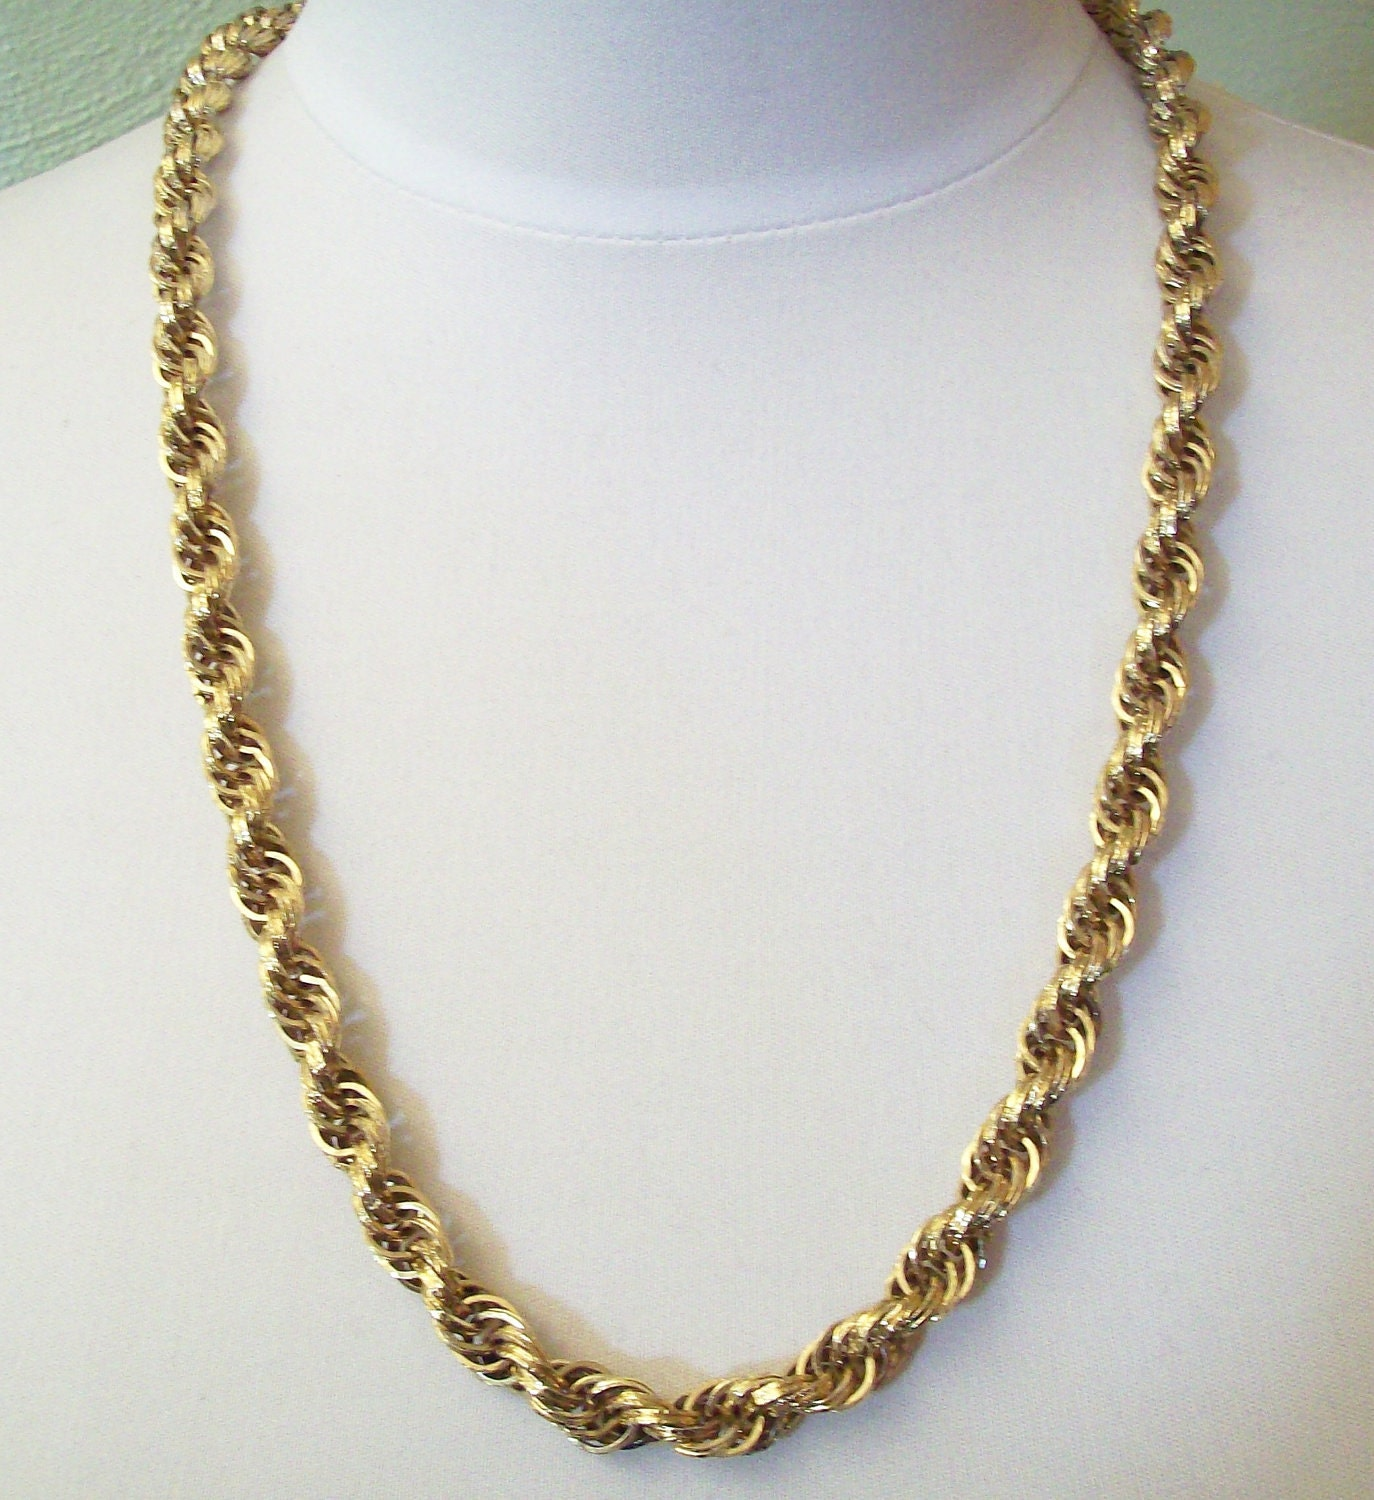 monet golden twisted rope chain necklace